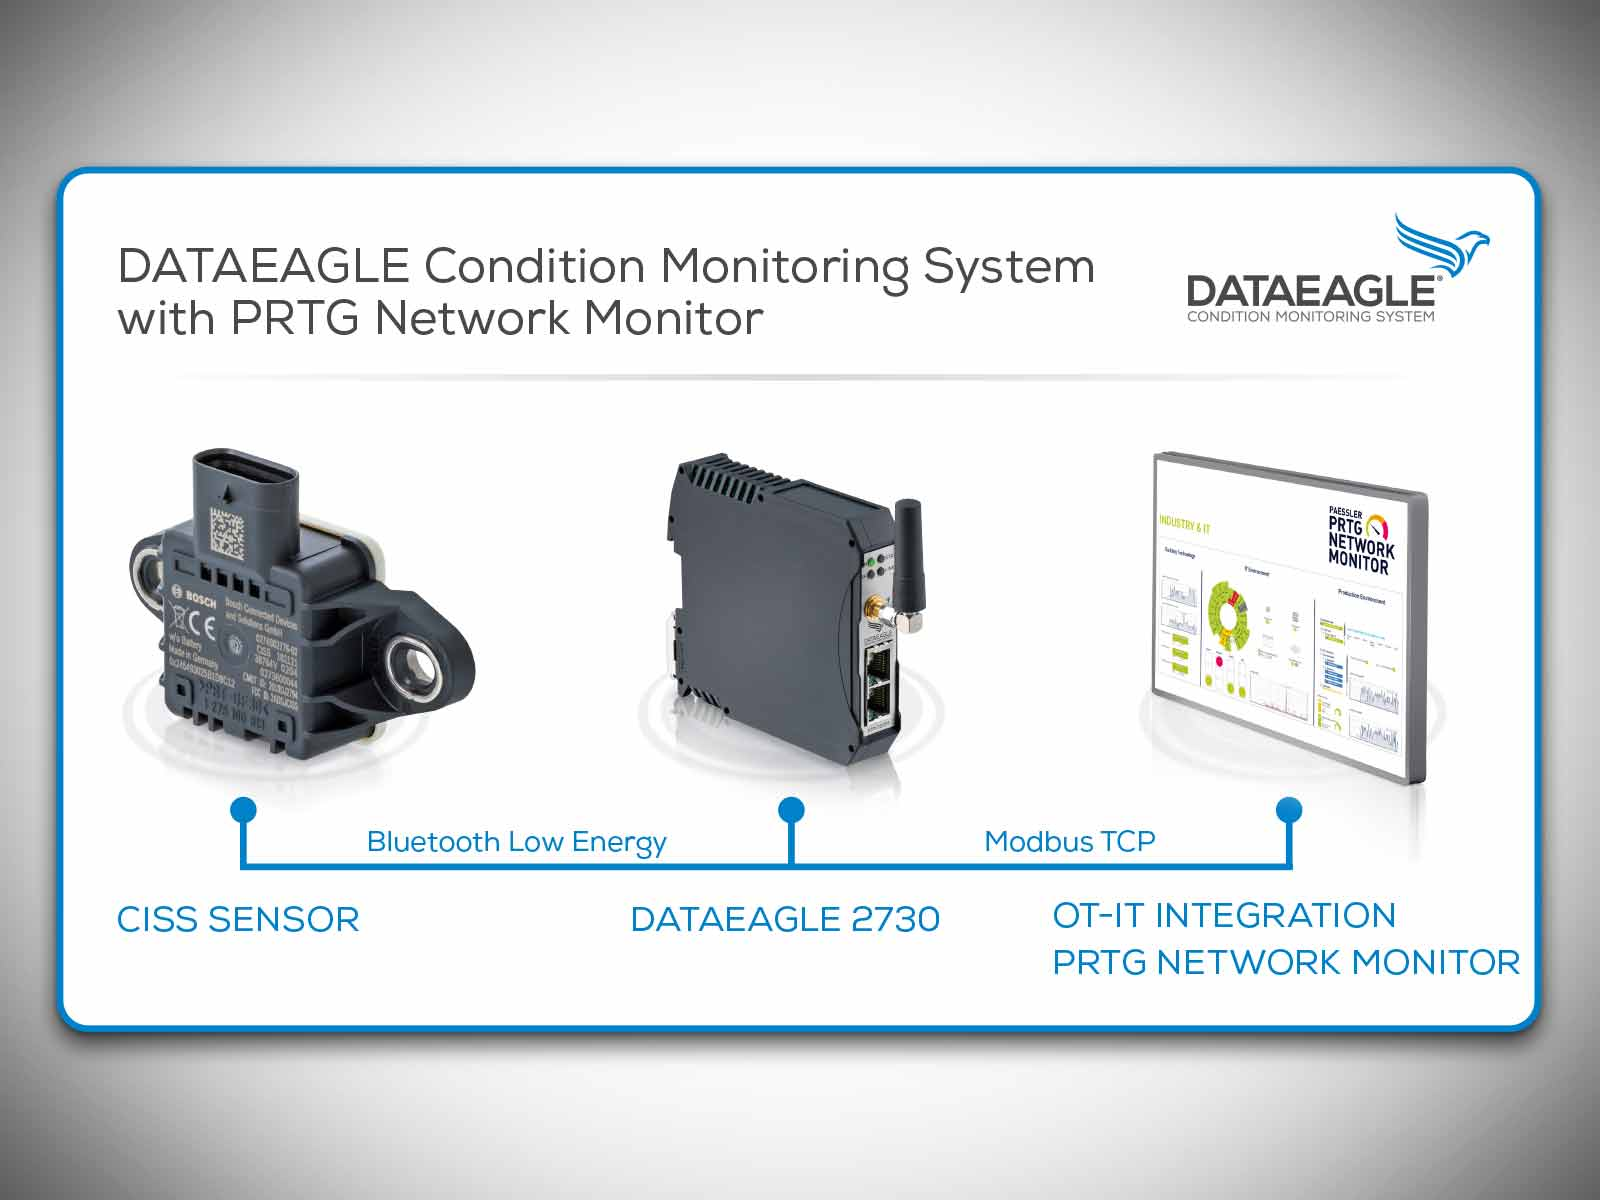 Dataeagle conition Monitoring system PRTG Network Monitor